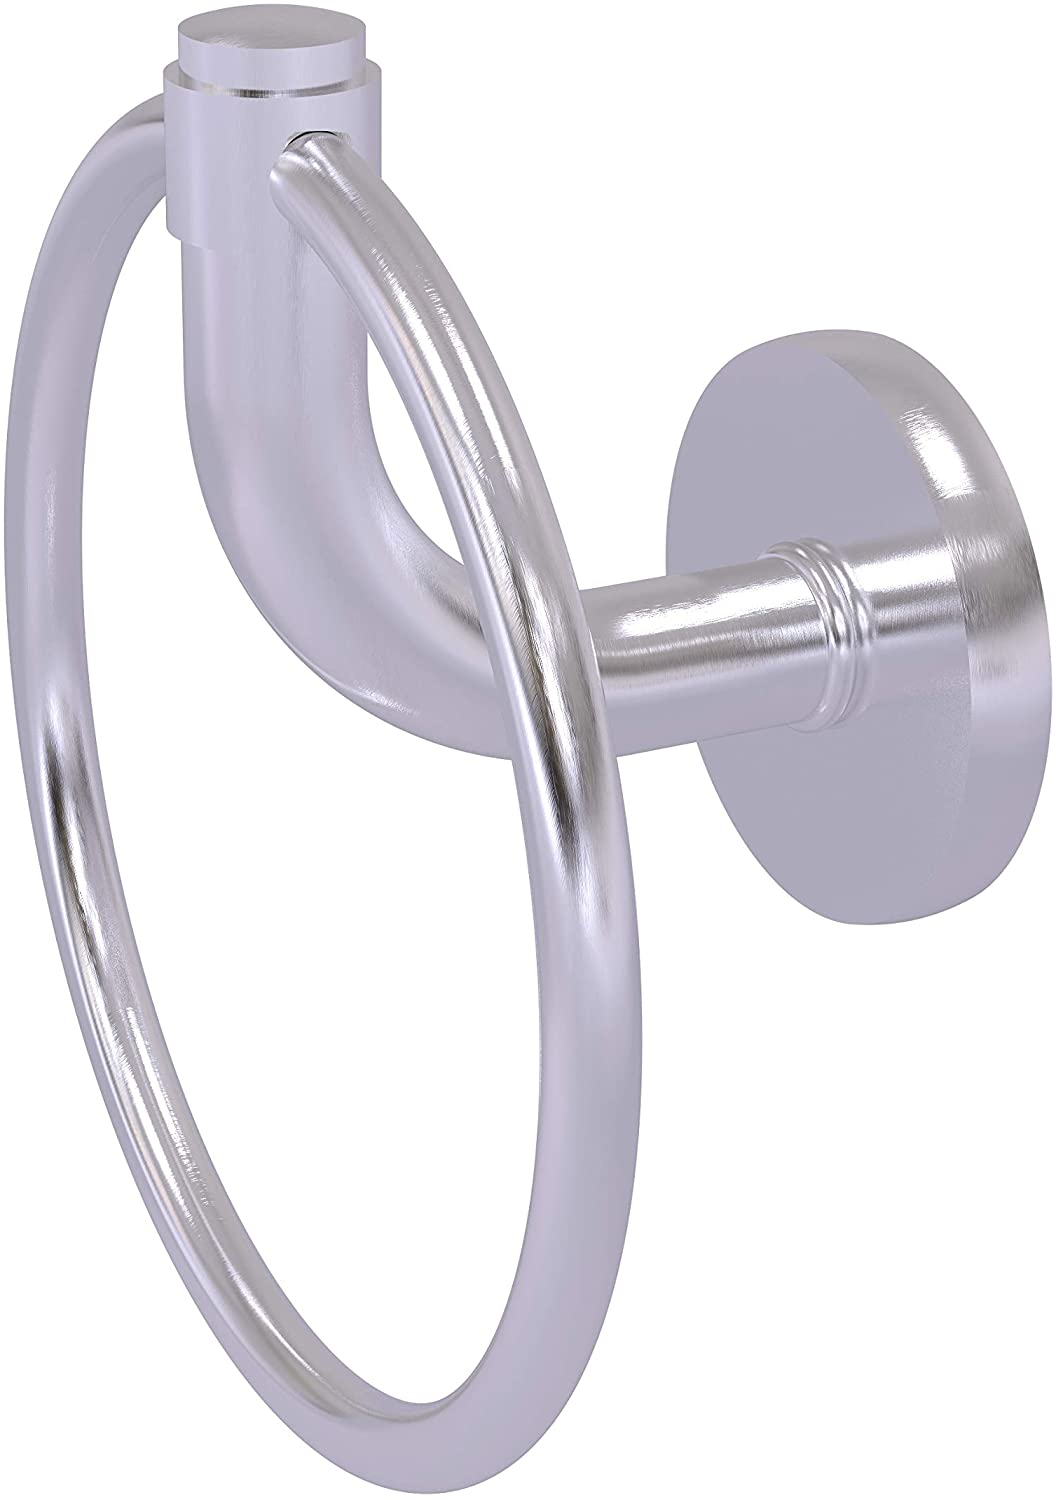 Allied Brass RM-16 Remi Collection Towel Ring, Satin Chrome